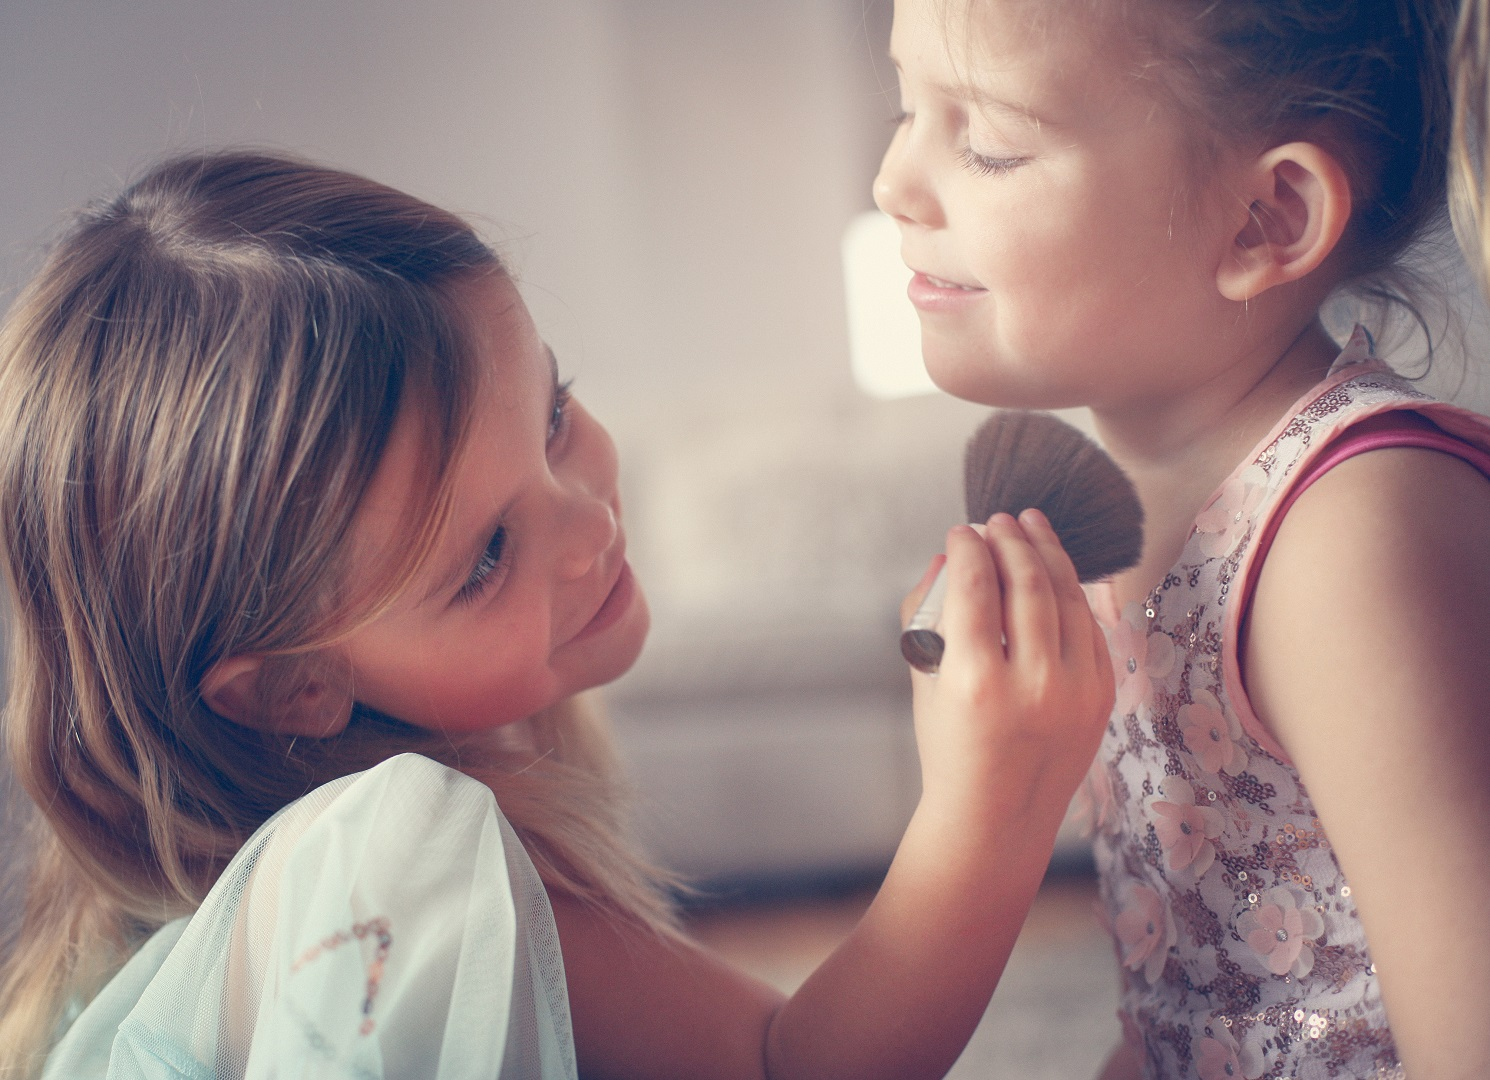 Young Girls Playing with Makeup Powder Brush